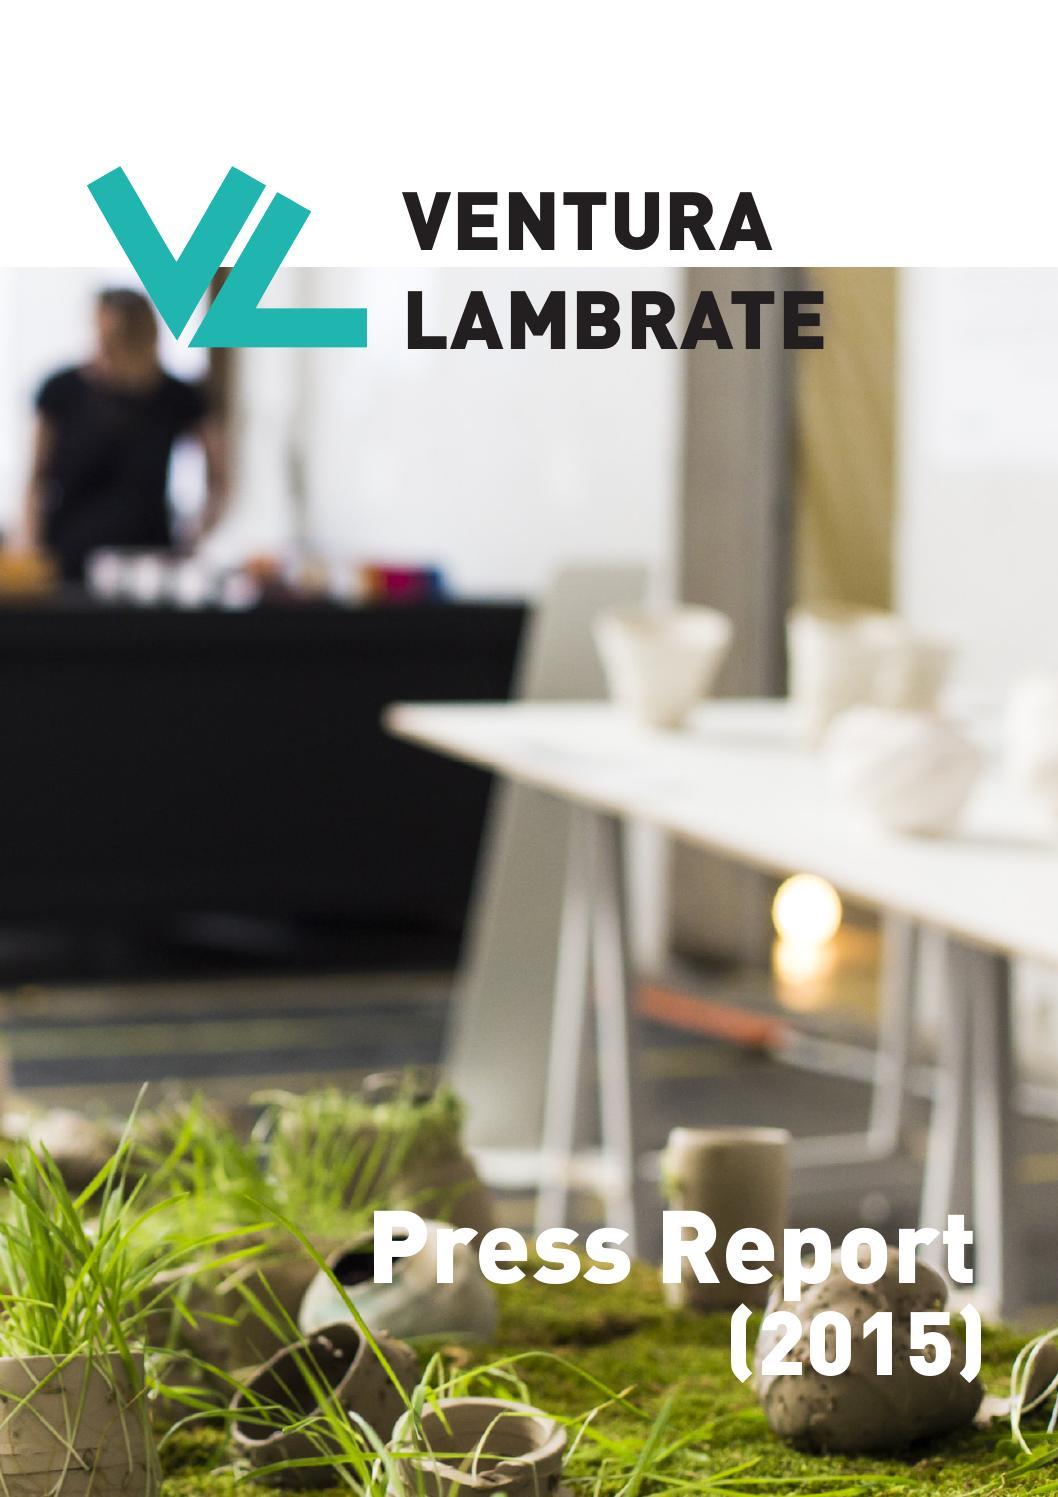 Vintage Tv Meubel Andersen.Ventura Lambrate Press Report 2015 By Ventura Projects Issuu